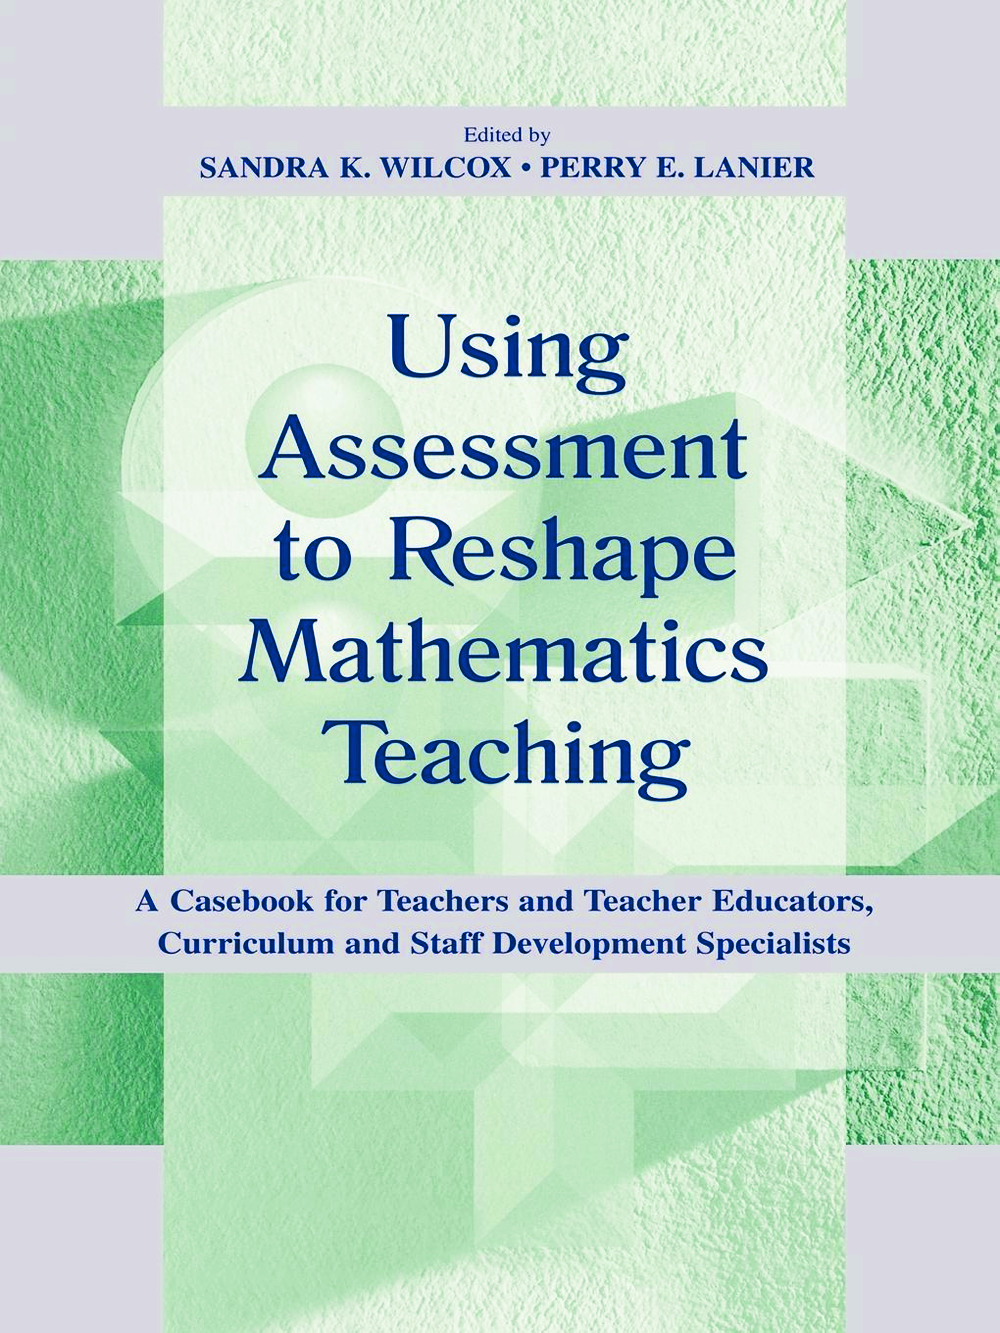 Using Assessment To Reshape Mathematics Teaching: A Casebook for Teachers and Teacher Educators, Curriculum and Staff Development Specialists book cover